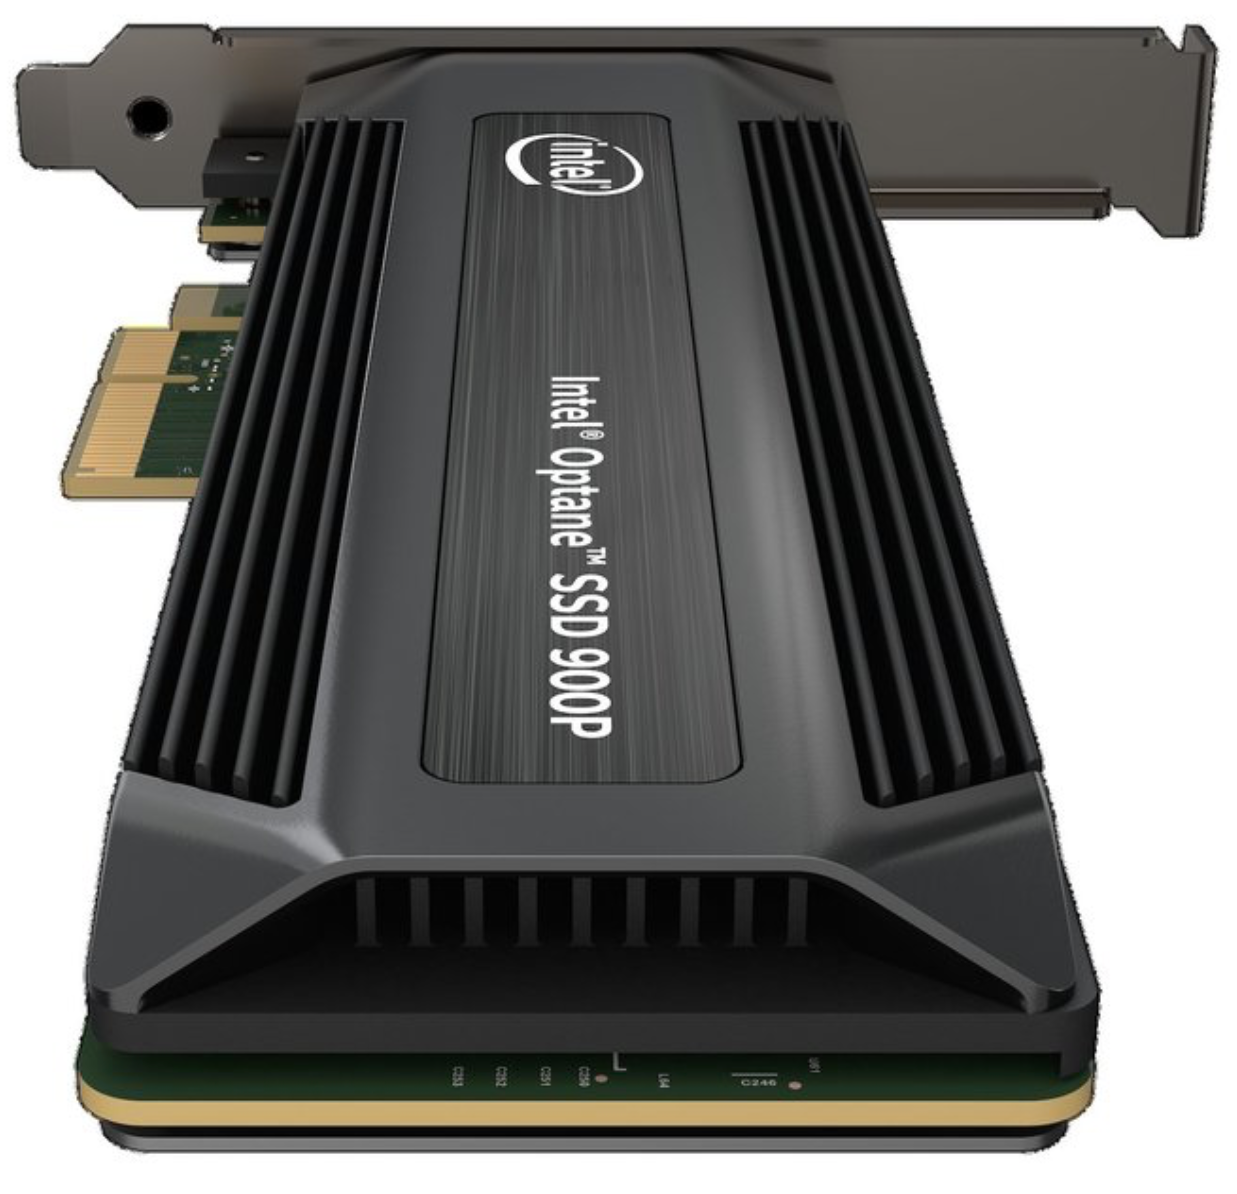 Tom's Hardware – Intel Optane SSD 900P Review: 3D XPoint Unleashed using BAPCo's SYSmark 2014 SE Responsiveness Benchmark Test